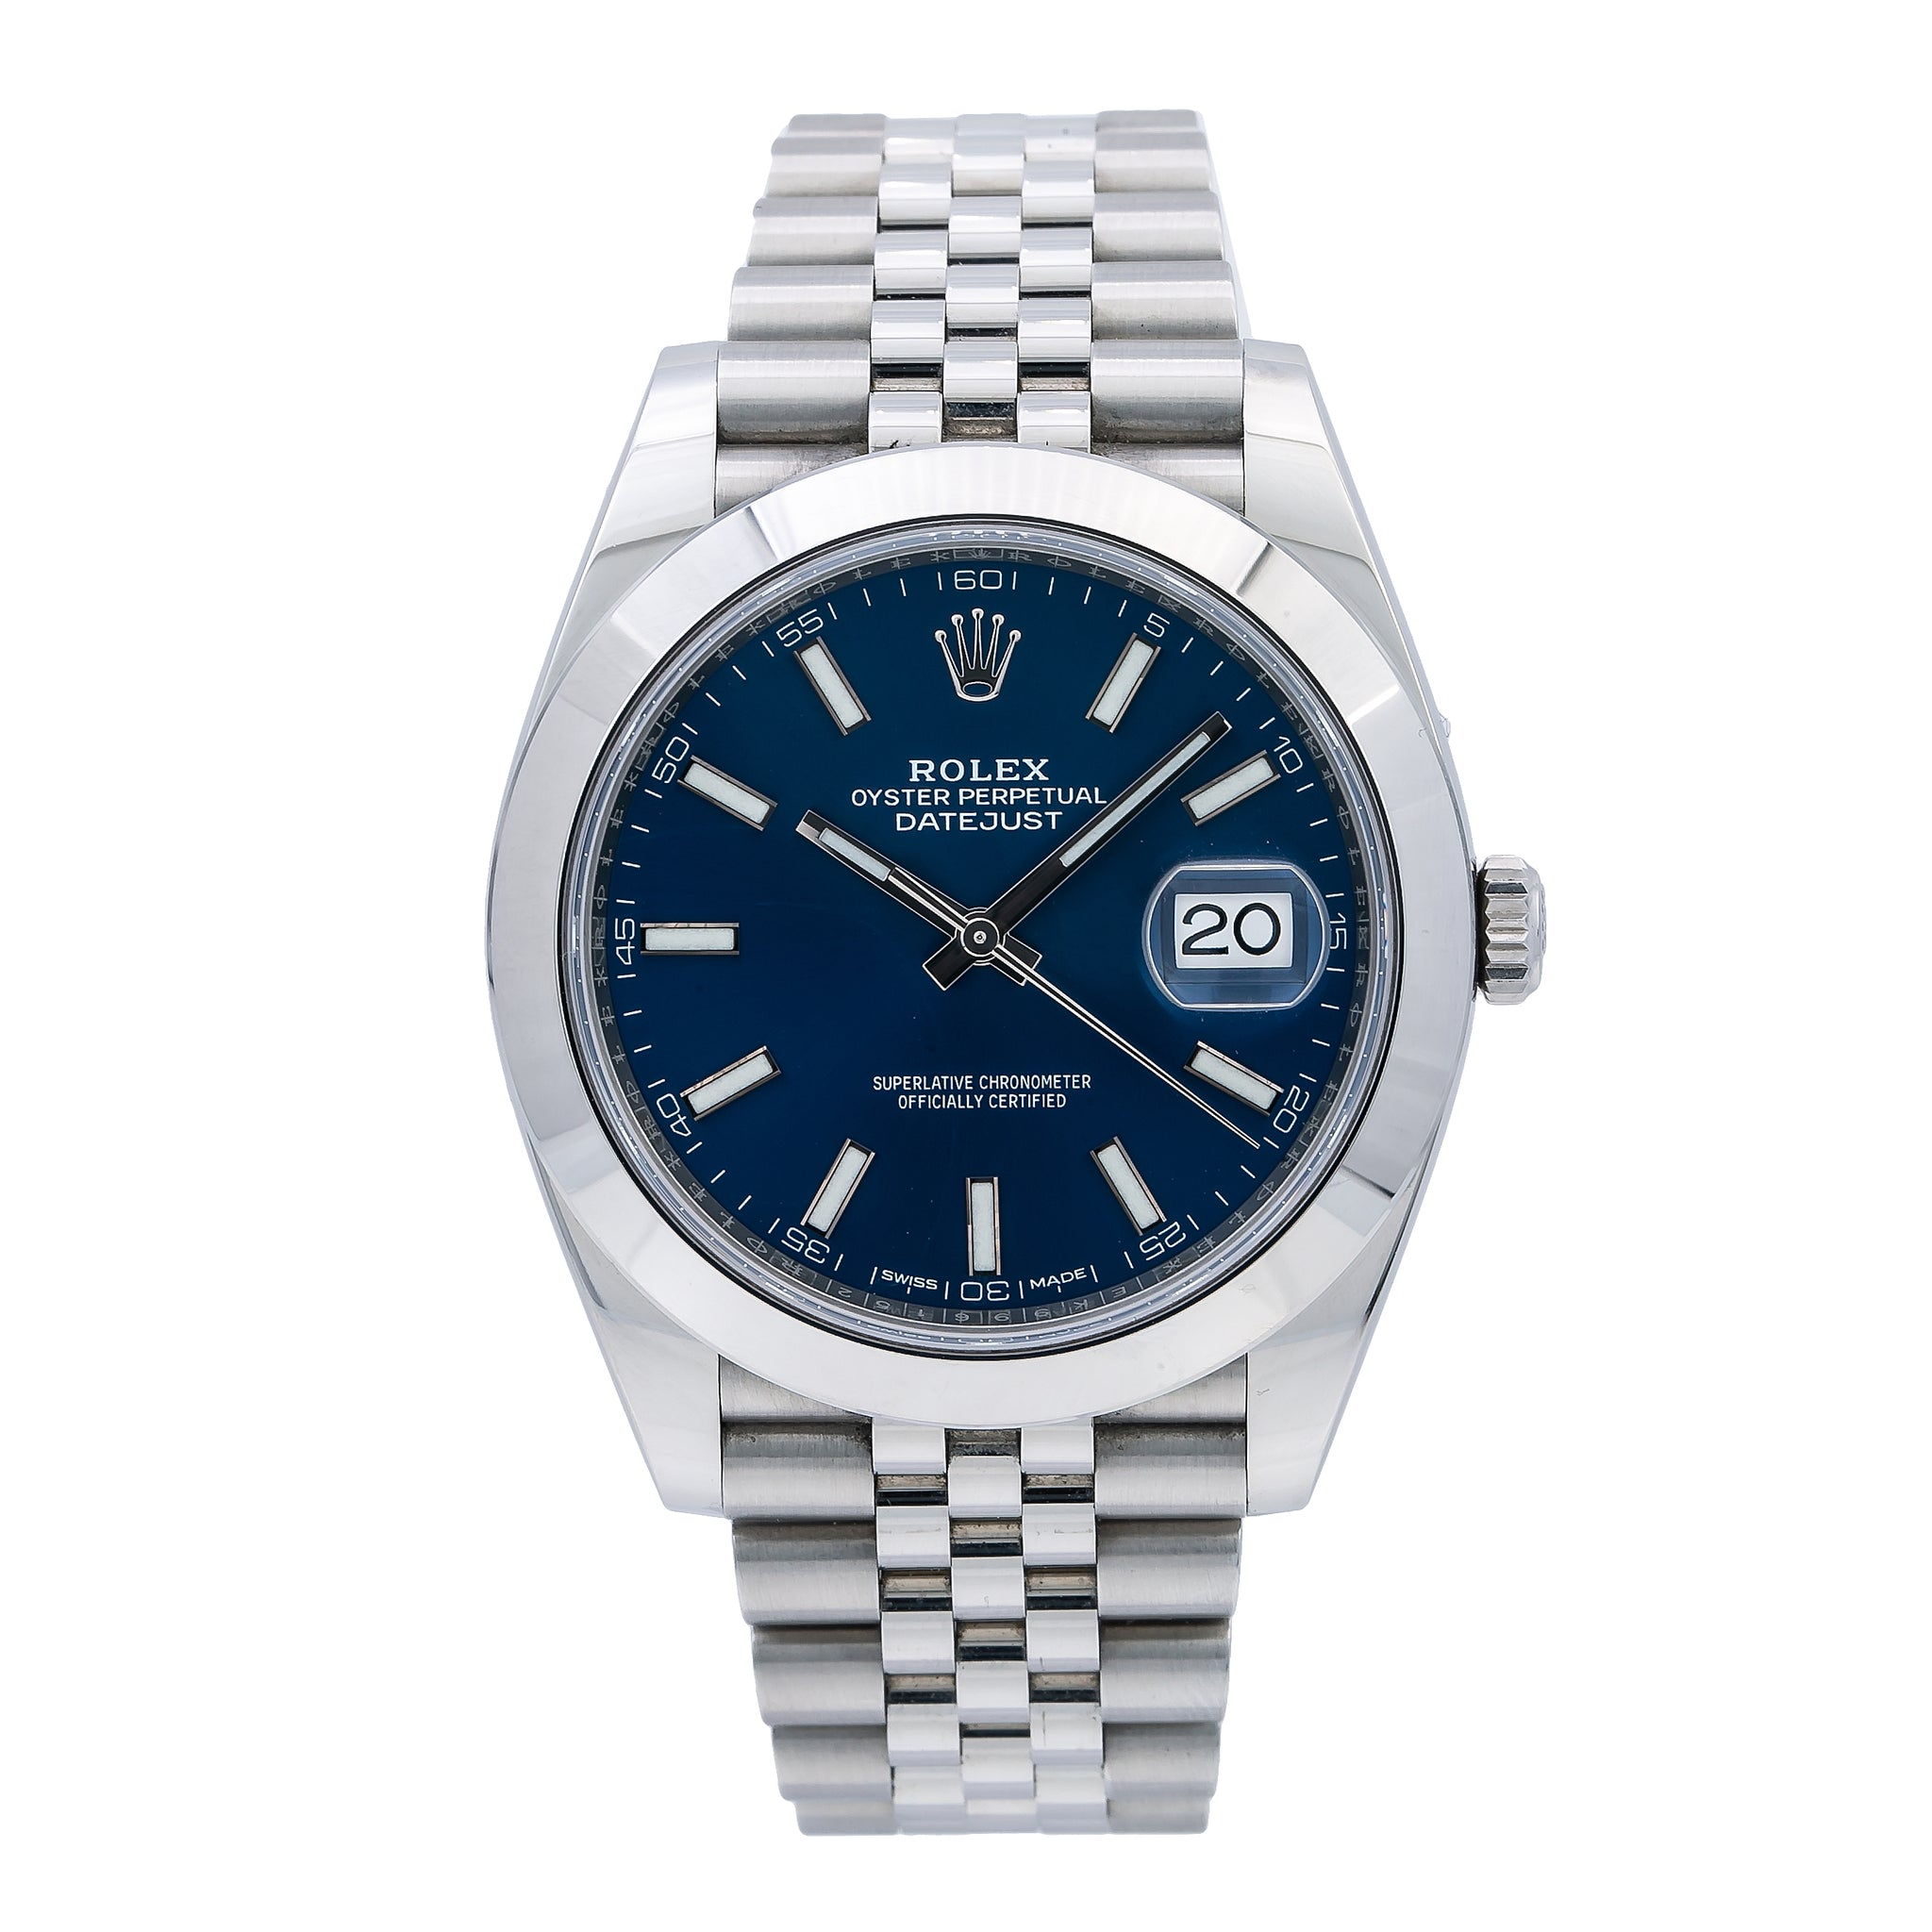 Rolex Datejust 126300 41MM Blue Dial With Stainless Steel Jubilee Bracelet